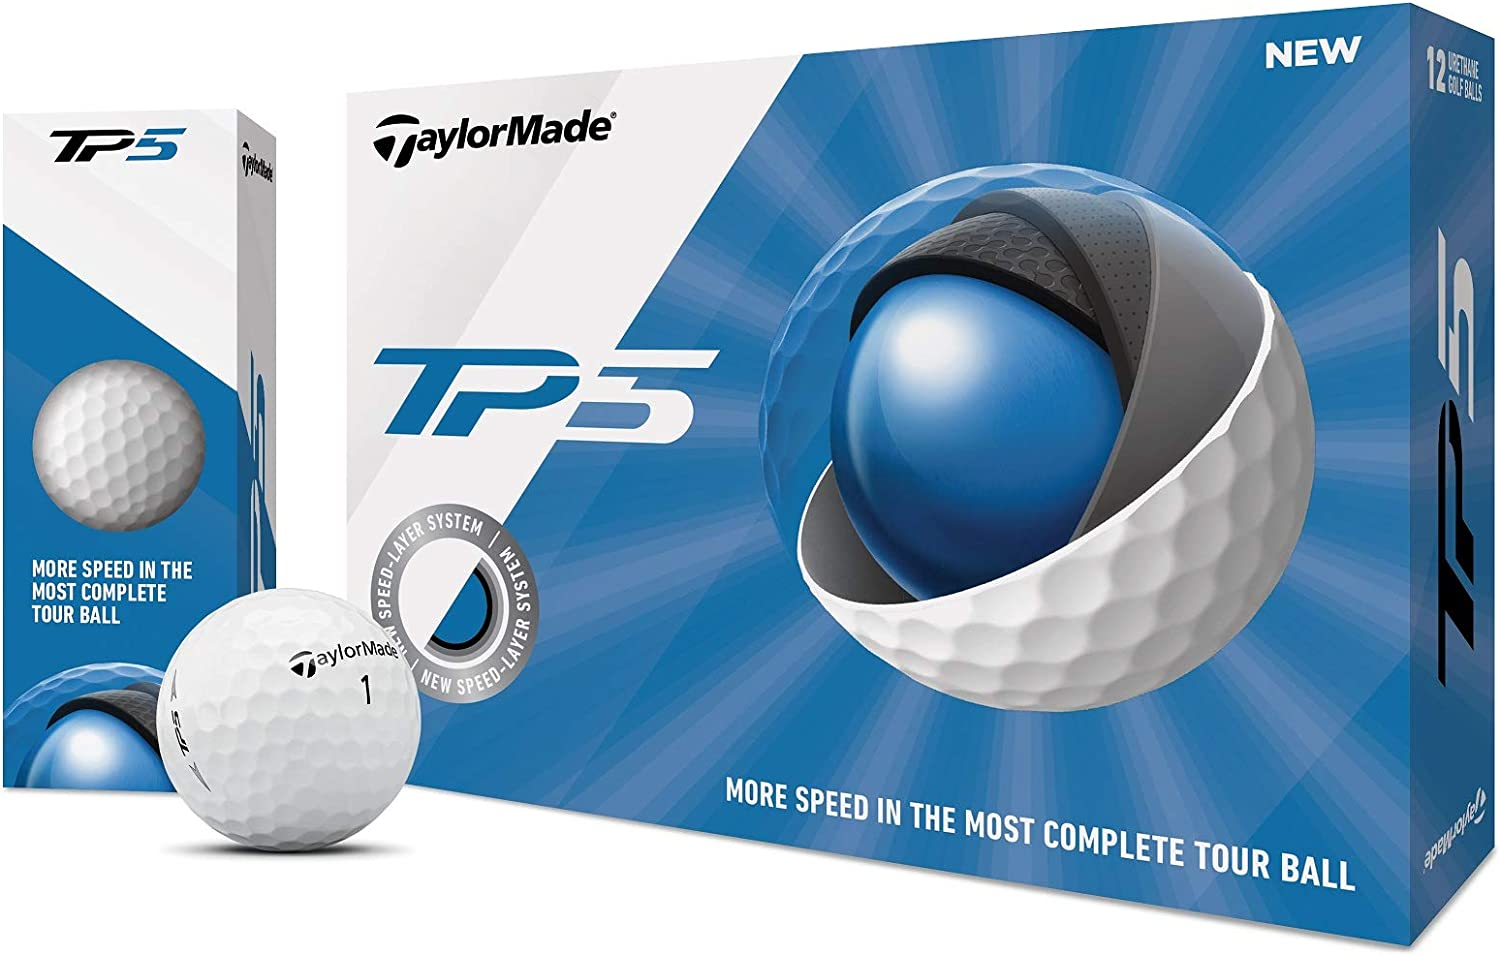 Taylormade TP5 vs Taylormade TP5X